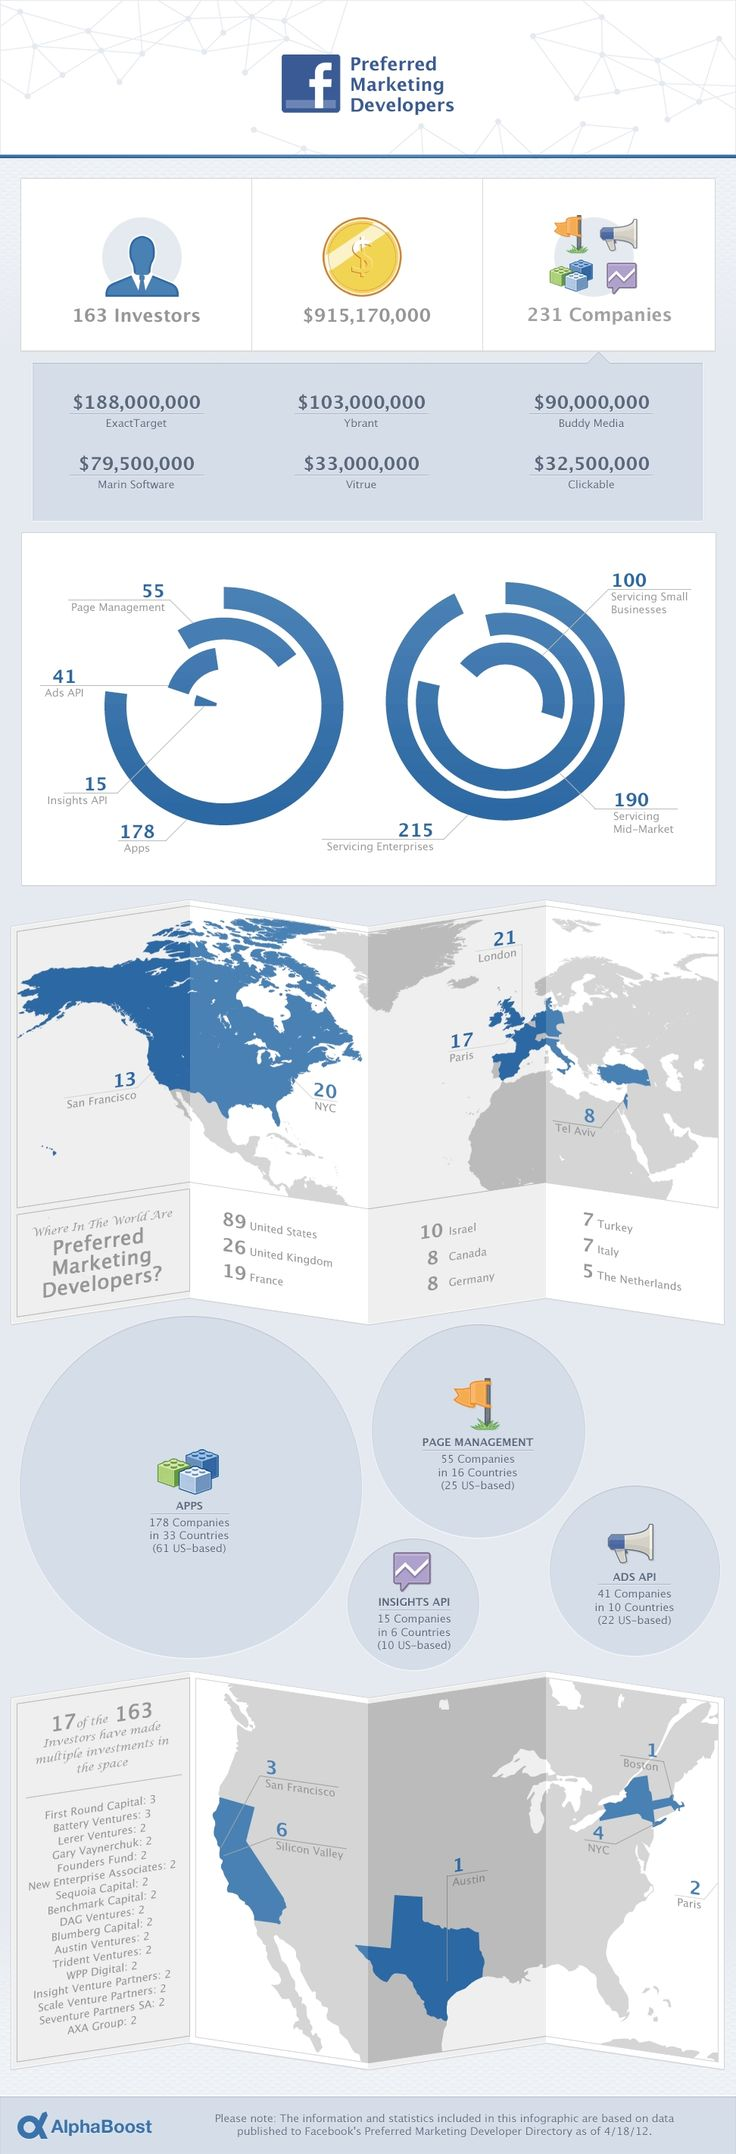 INFOGRAPHIC: Investment In Fac